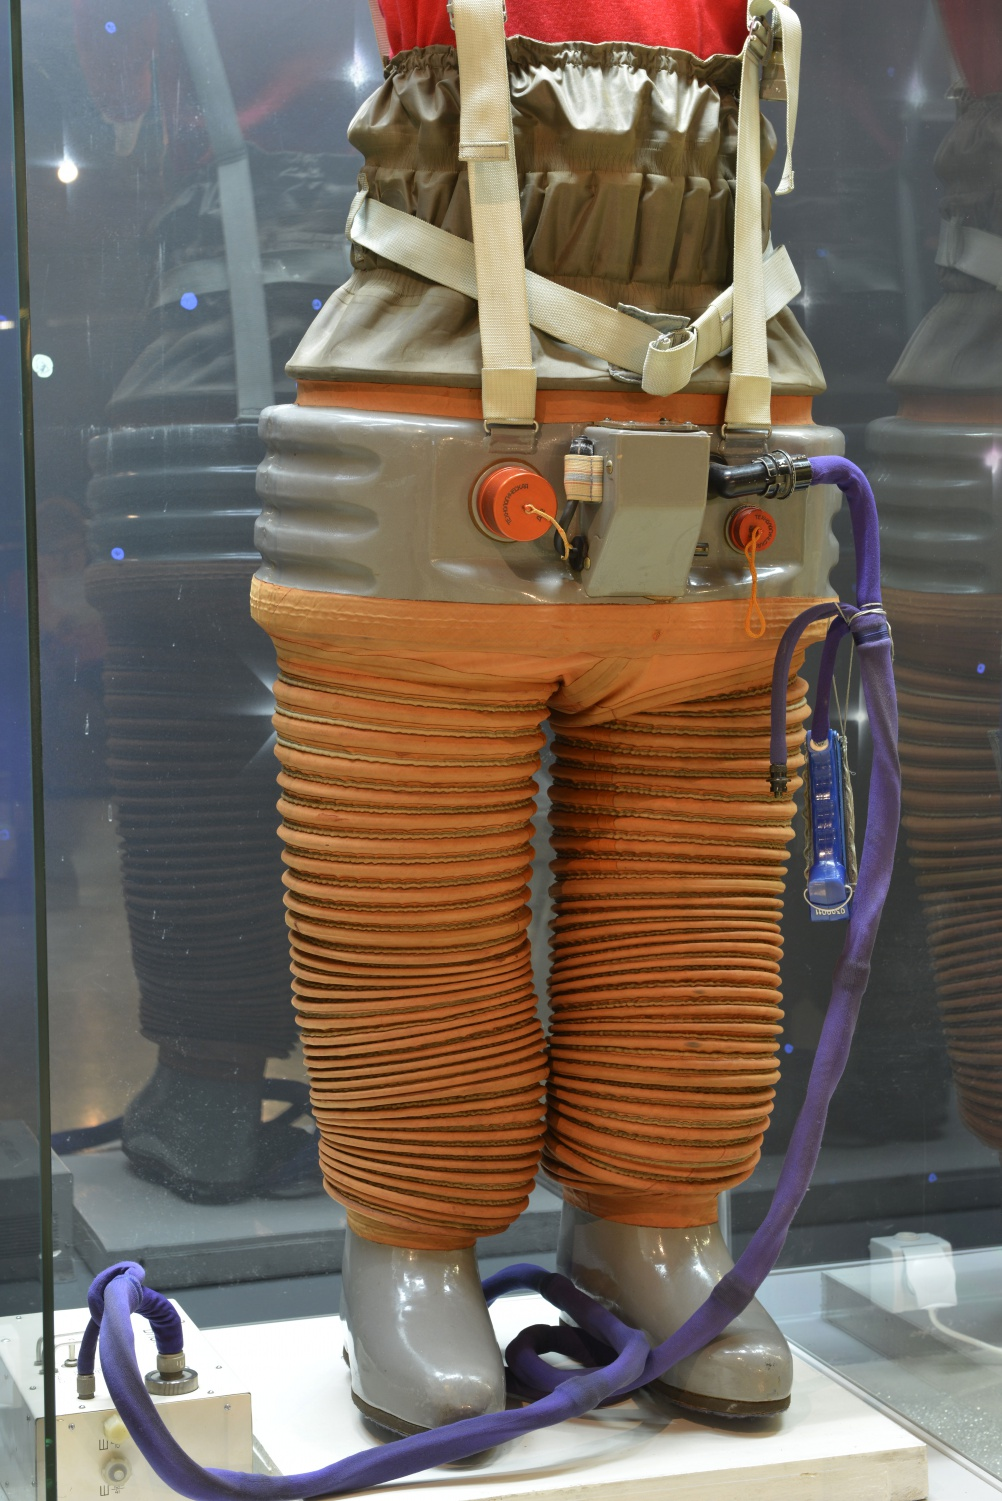 Chibis (Lapwing) Lower Body Negative Pressure Suit, 1971. Memorial Museum of Cosmonautics. Photo, State Museum and Exhibition Centre ROSIZO